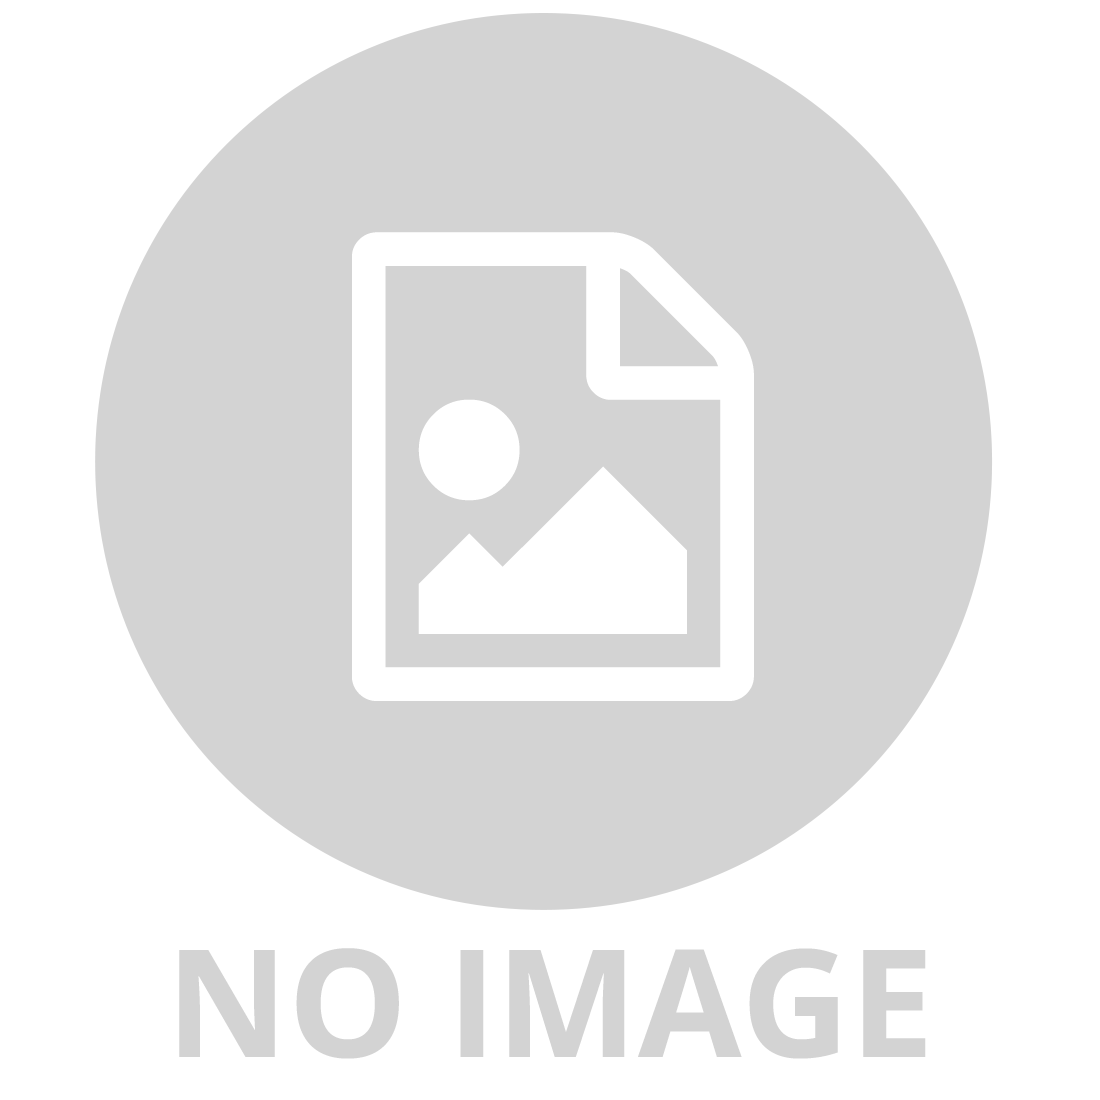 BACHMANN N-GAUGE LOCOMOTIVE 4-4-0 AMERICAN-BALTIMORE & OHIO